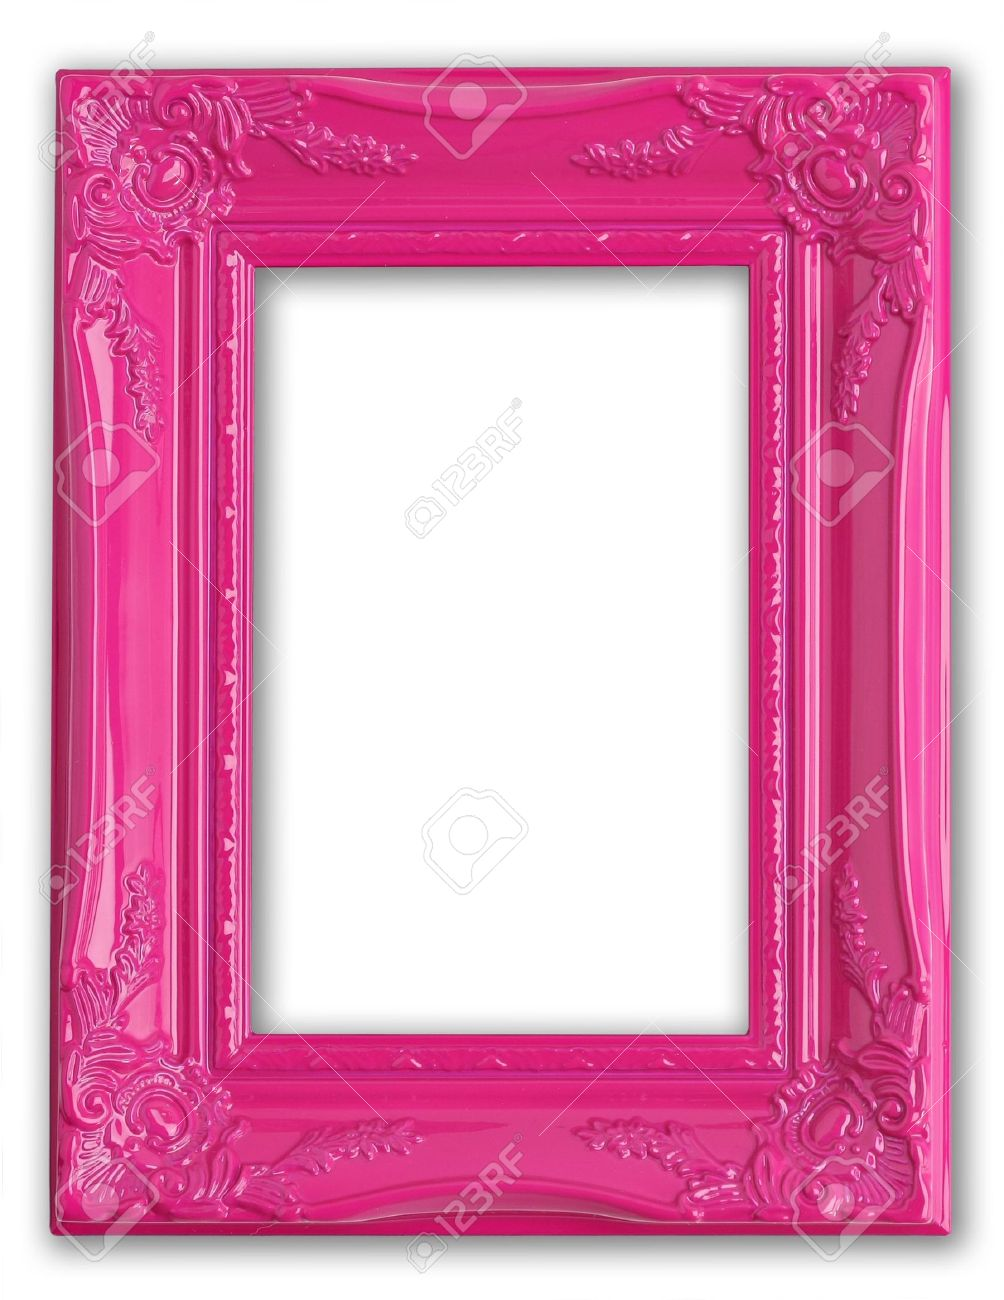 pretty pink picture frame stock photo 4870554